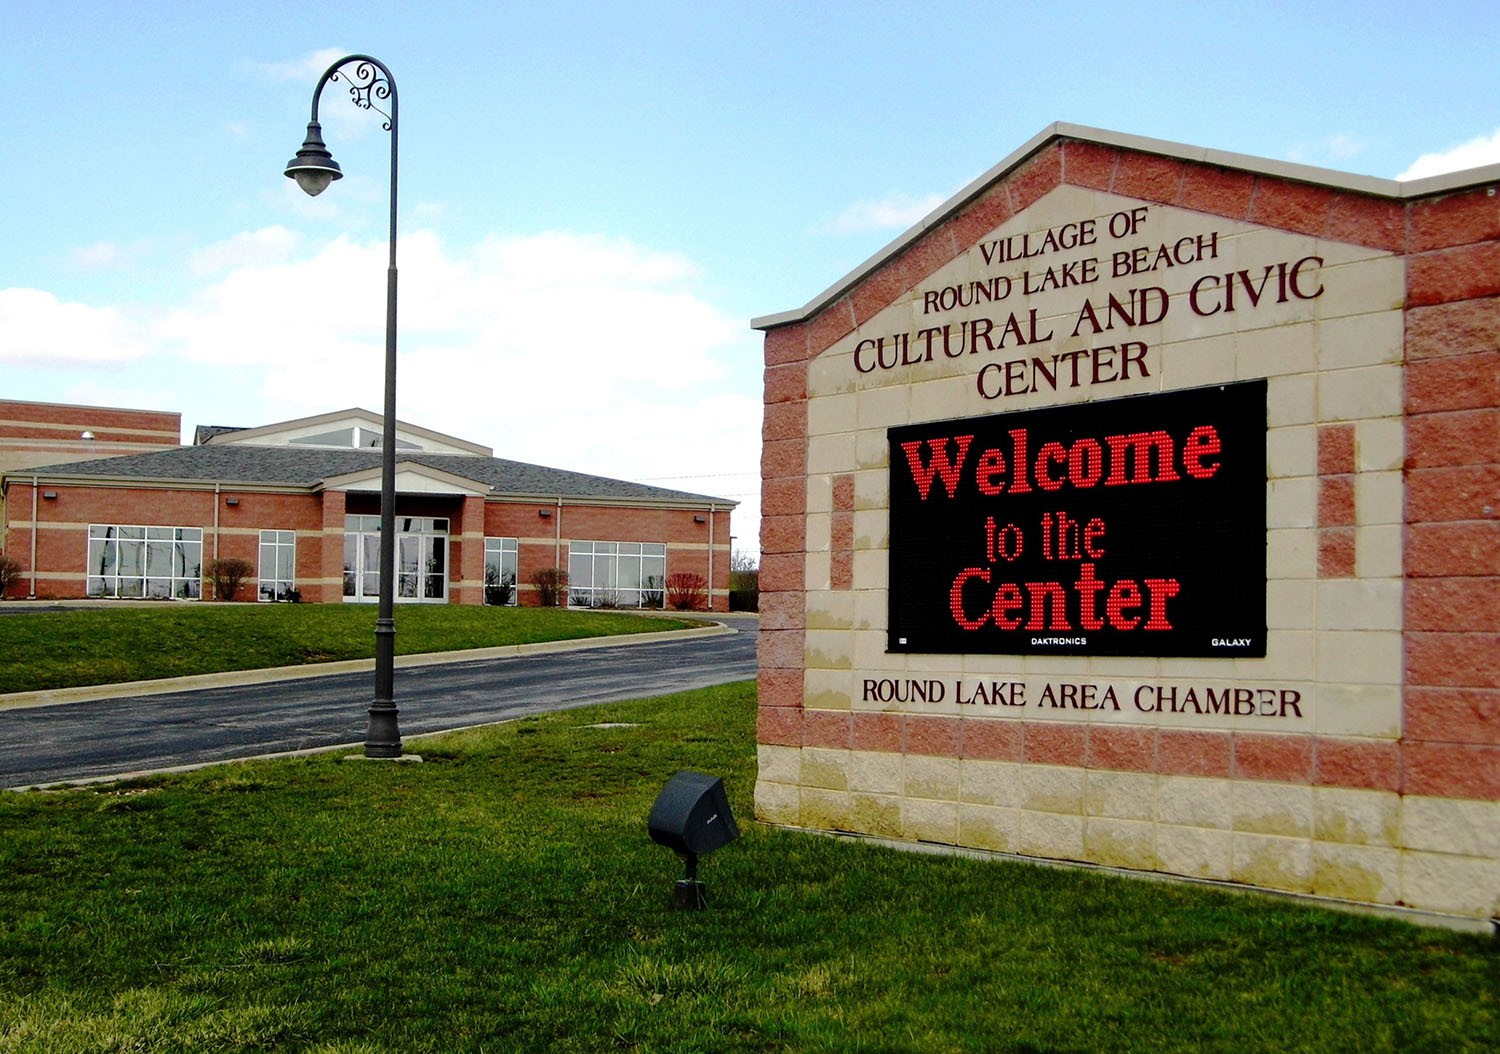 Cultural & Civic Center of Round Lake Beach